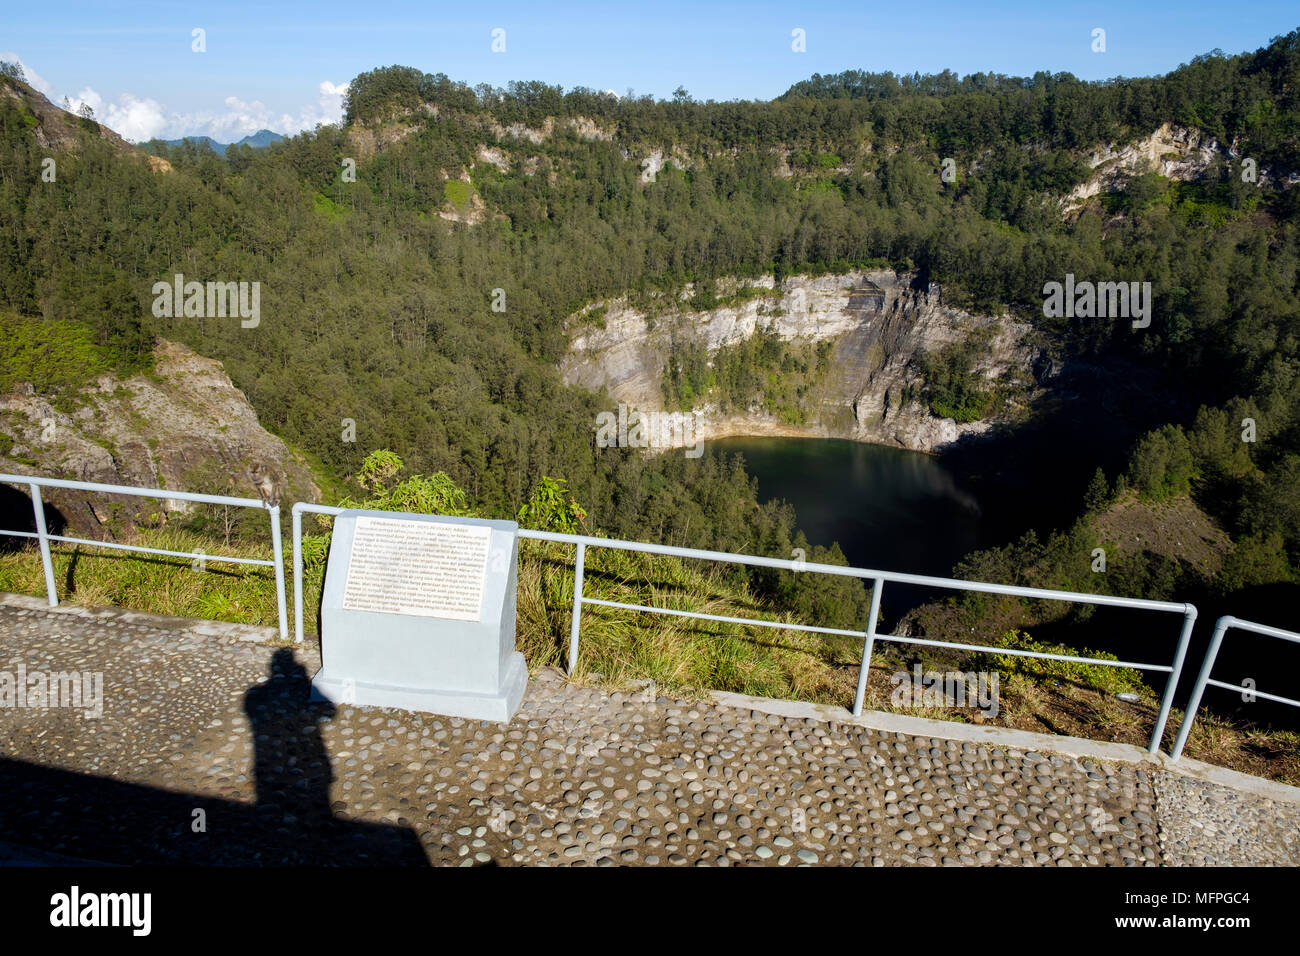 Danau Abutu, the most western of the three coloured crater lakes at Mount Kelimutu, Ende Regency, Flores Island, Indonesia. - Stock Image